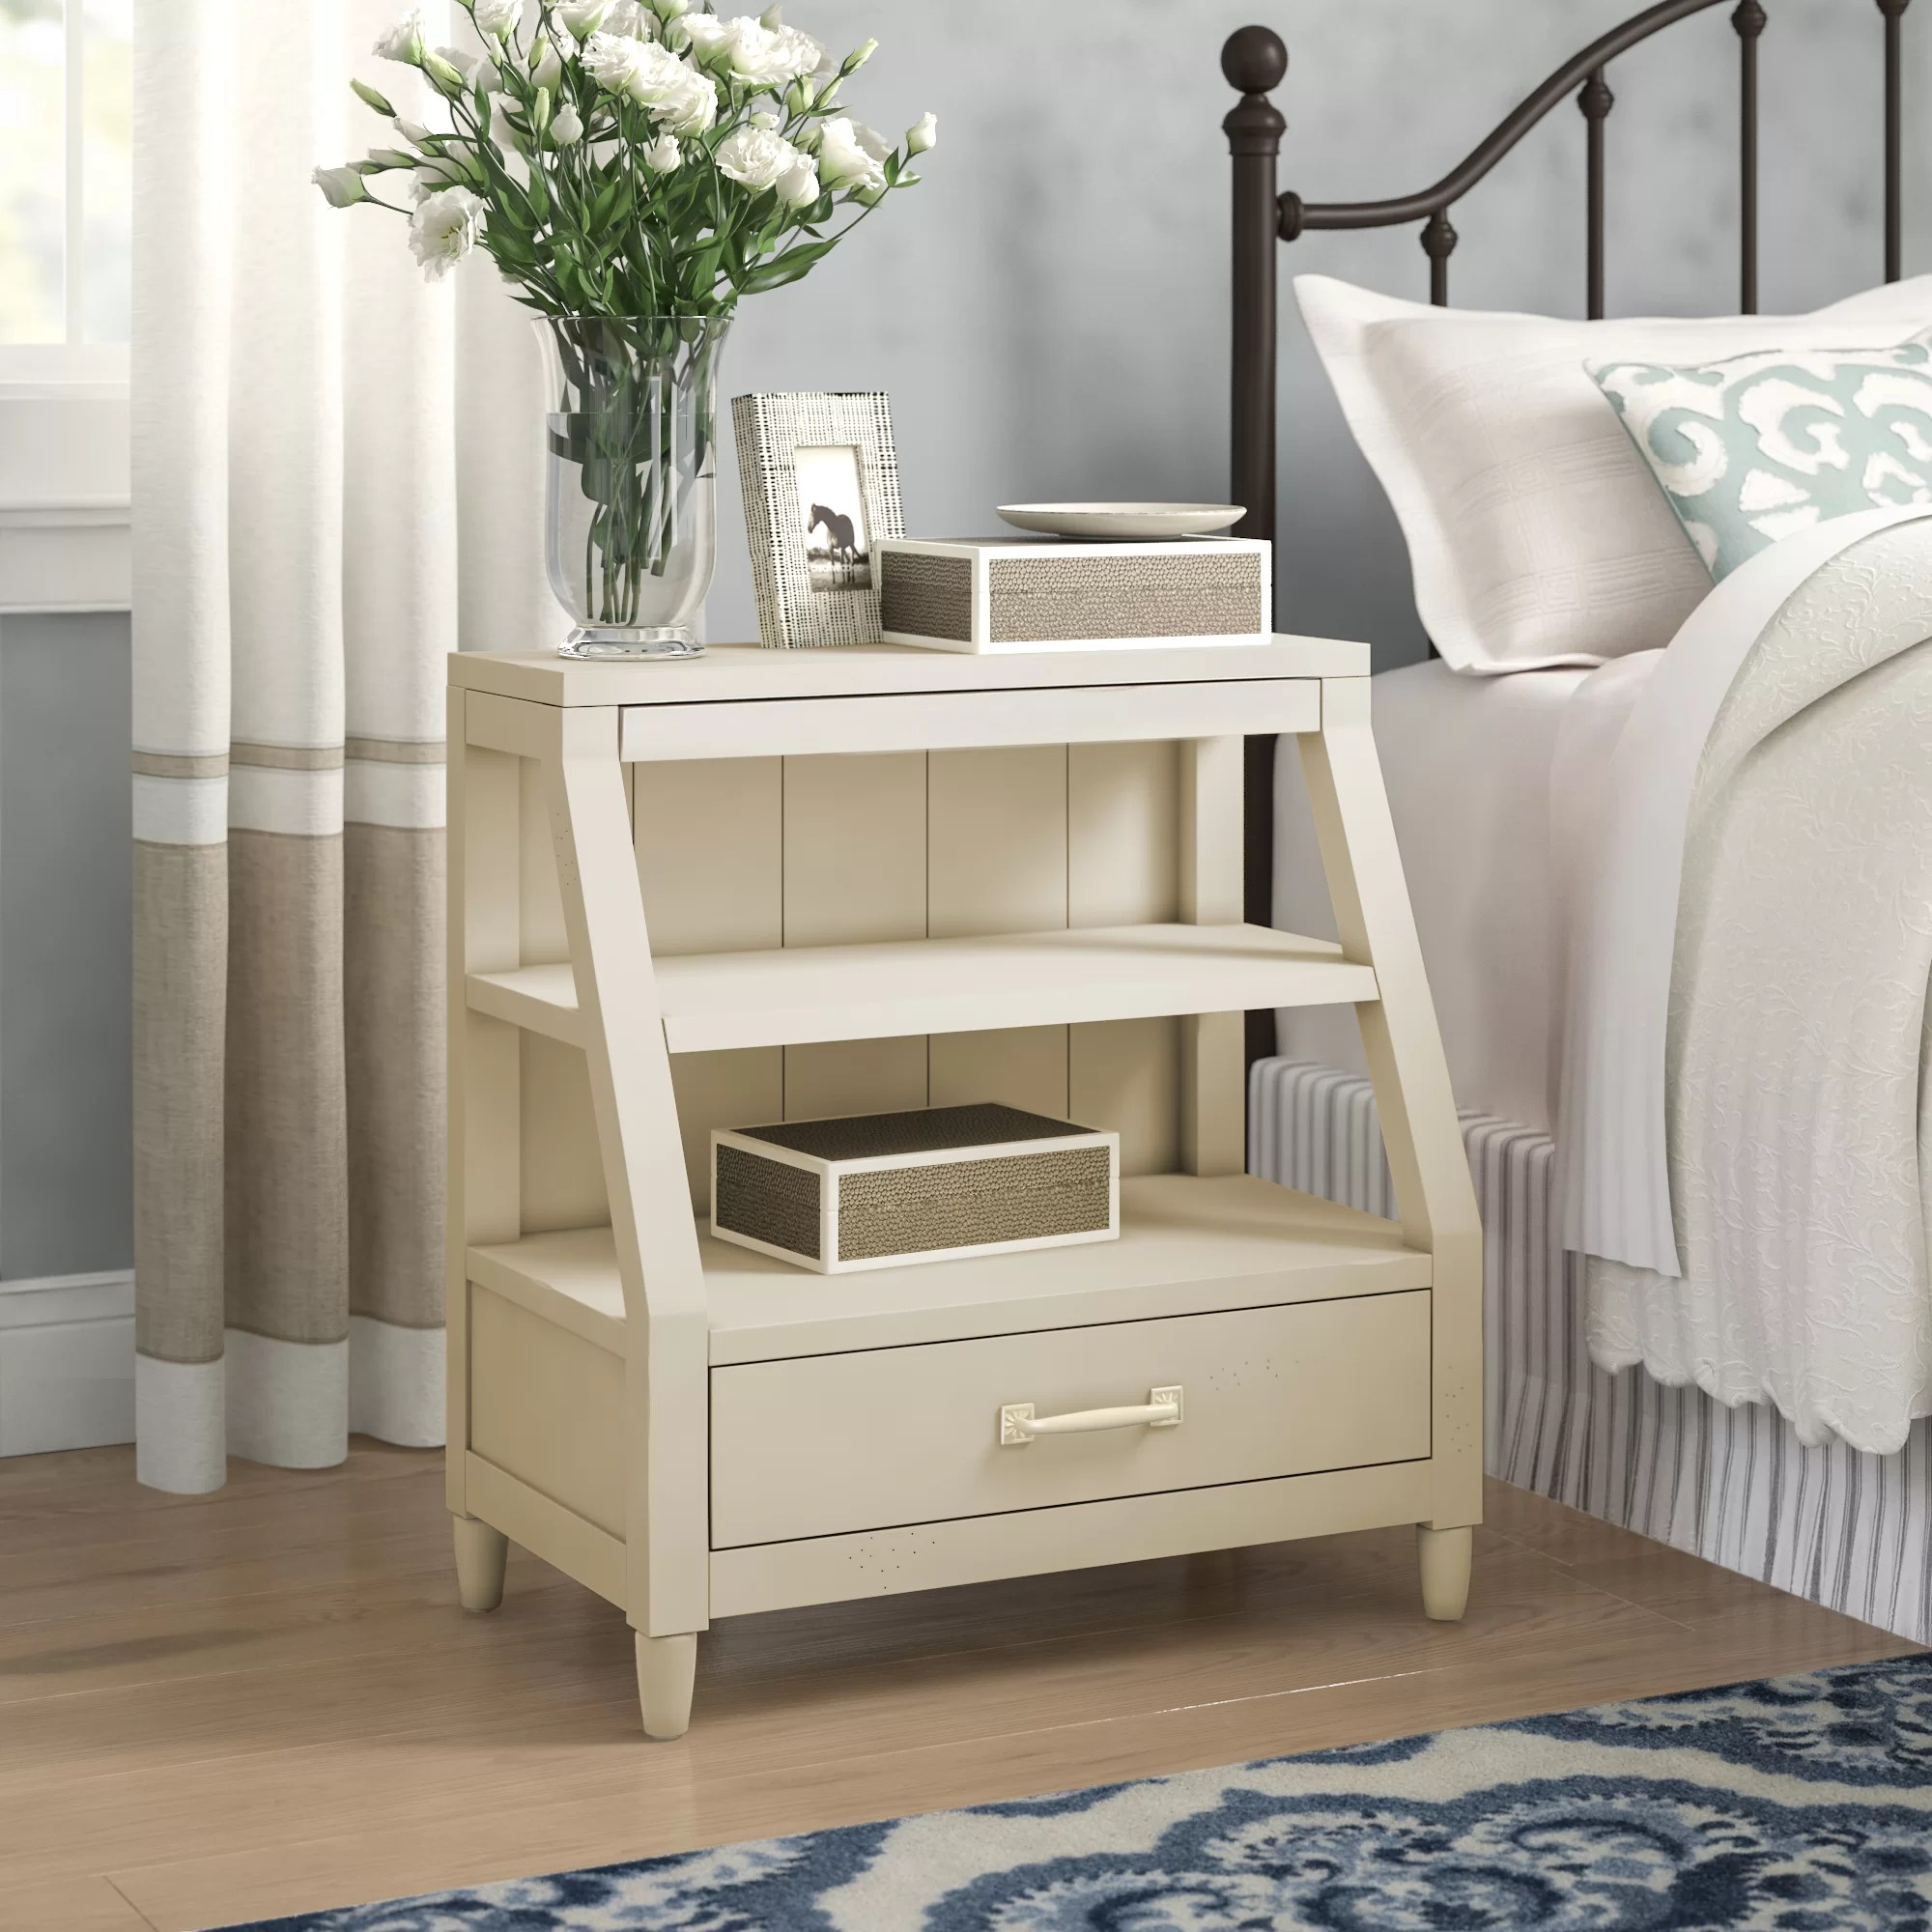 Reeves Open Shelf 1 Drawer Nightstand